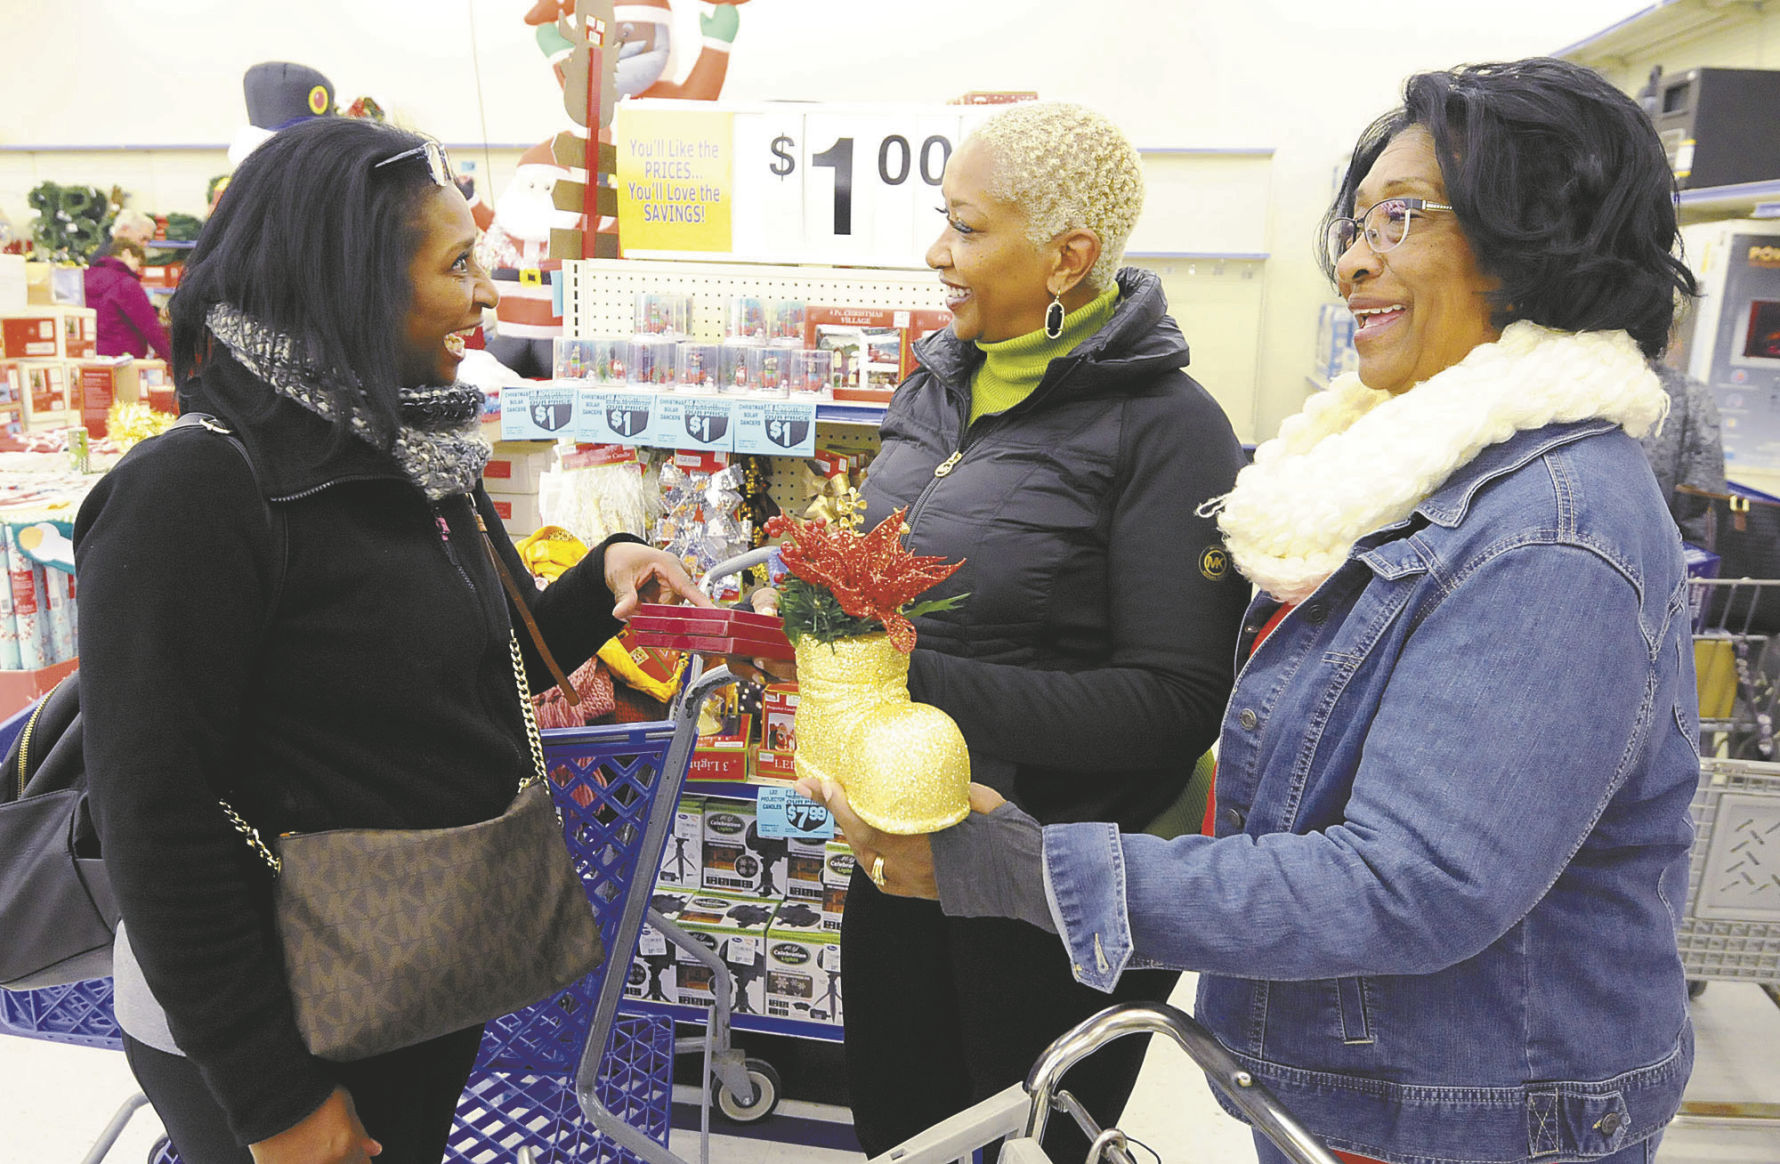 Black Friday Shopping Steady Foot Traffic Helps Drive Black Friday Sales Business